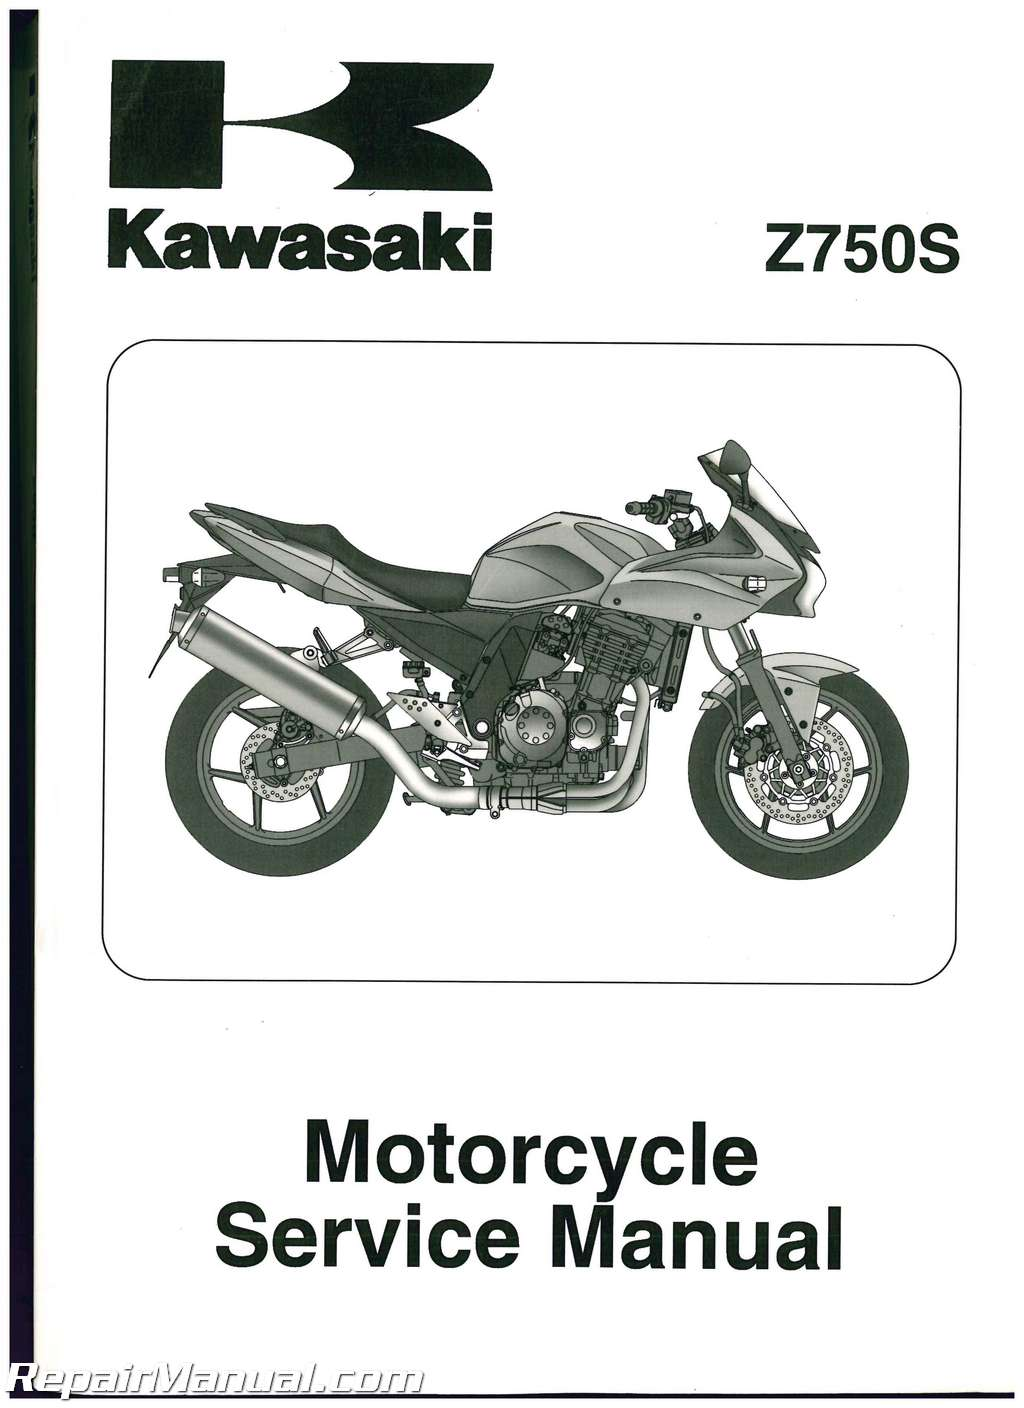 2005 2007 kawasaki z750s zr750k motorcycle service manual 2006 kawasaki z750s owners manual kawasaki z750s manual download